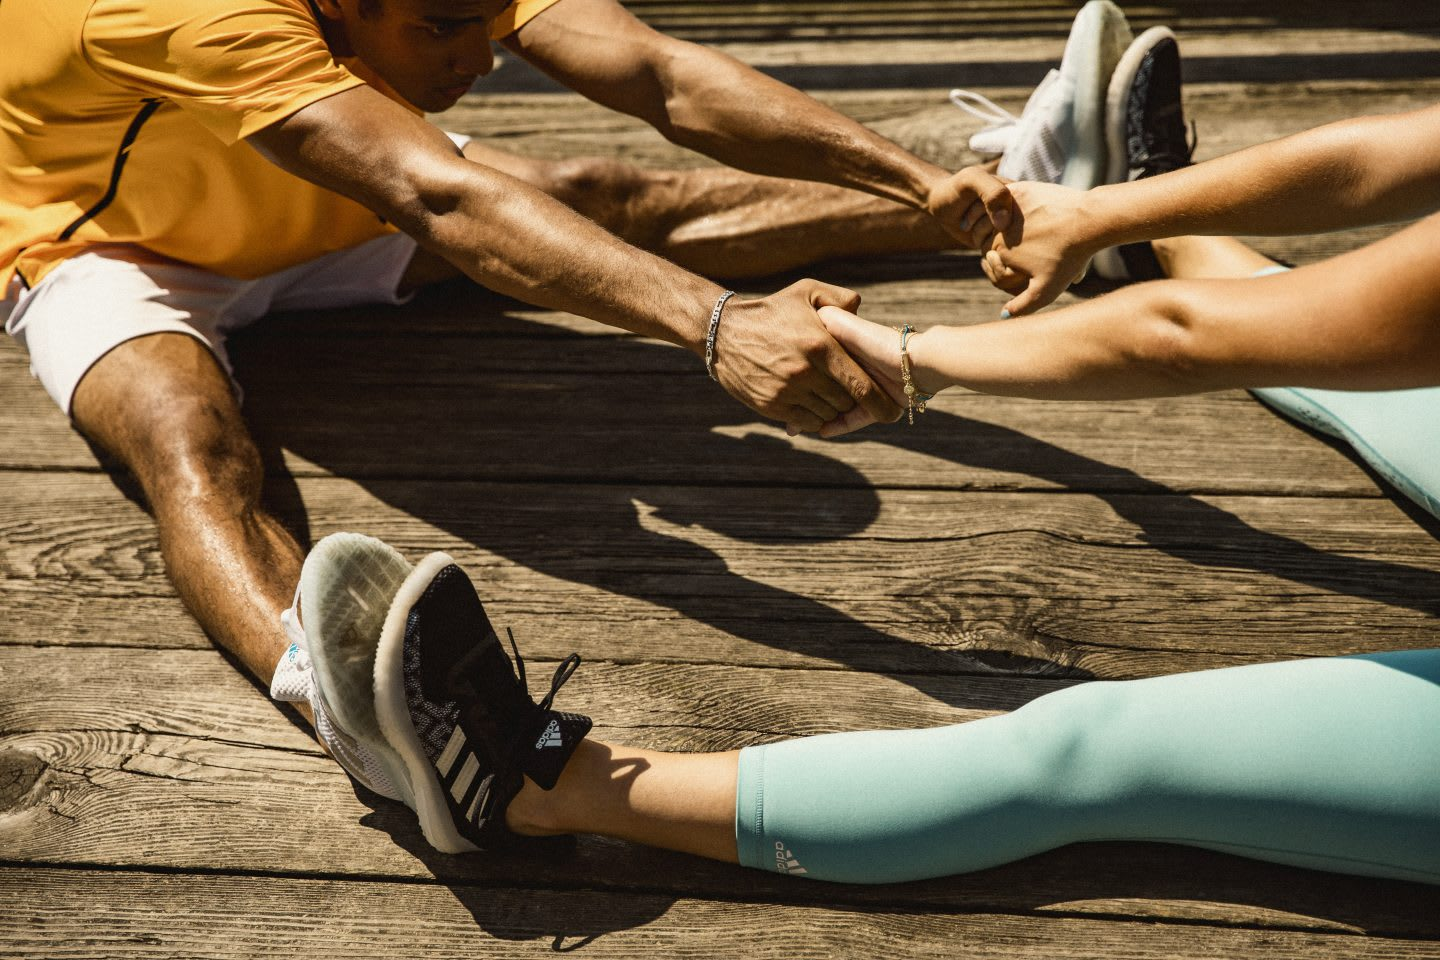 Two people holding hands and stretching after exercising, workout, sport, sport attire, adidas, warmup